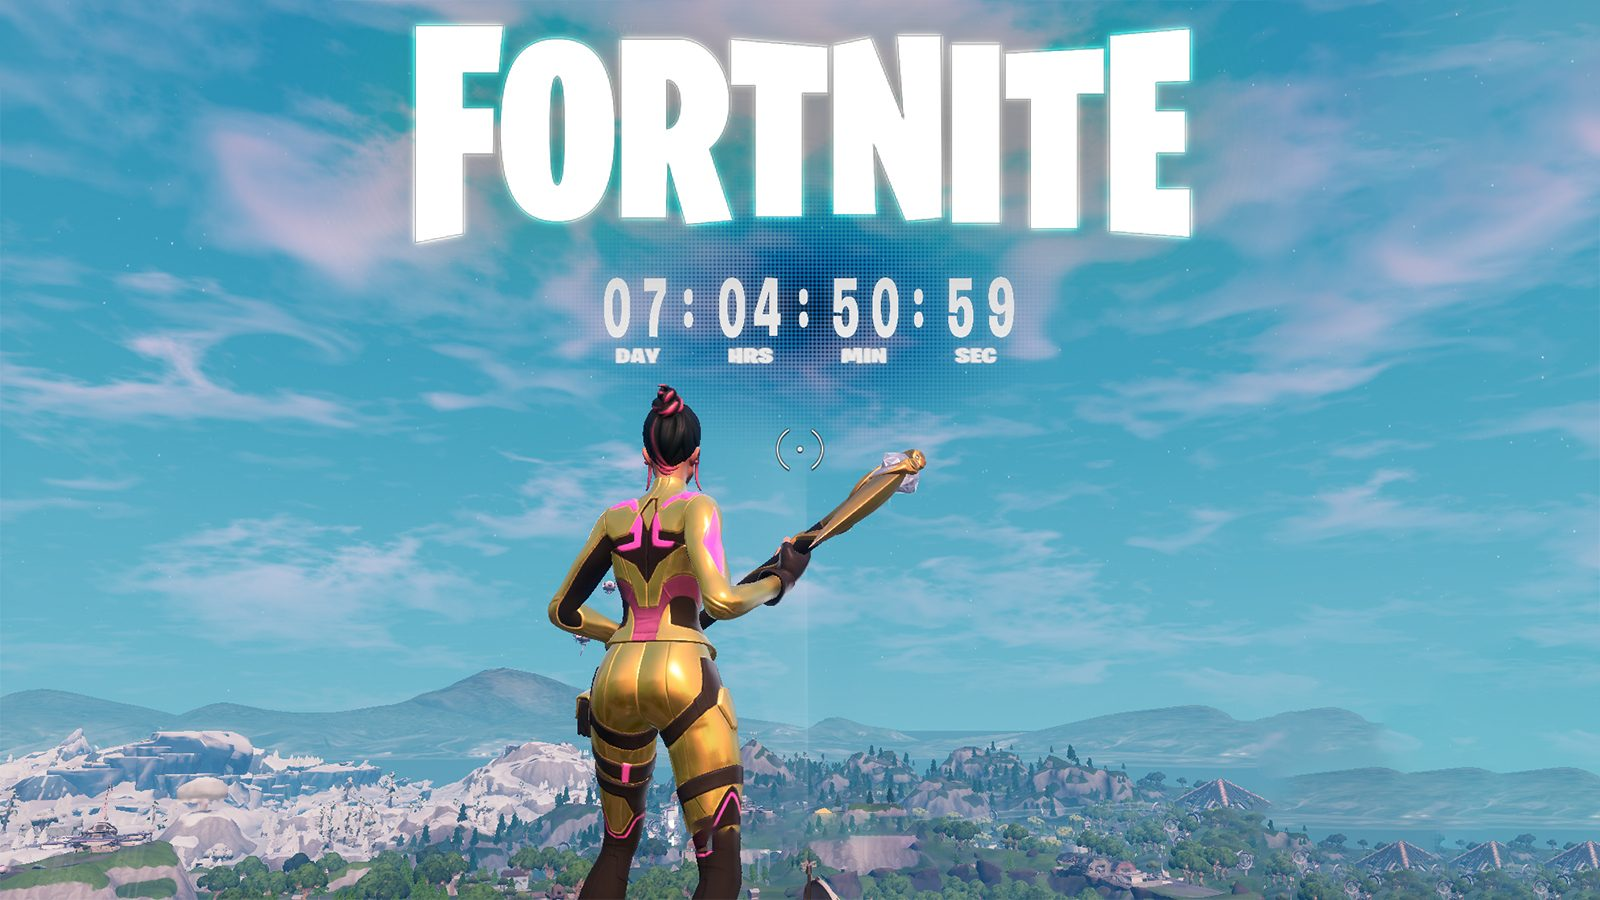 Next 'Fortnite' event is happening on July 20